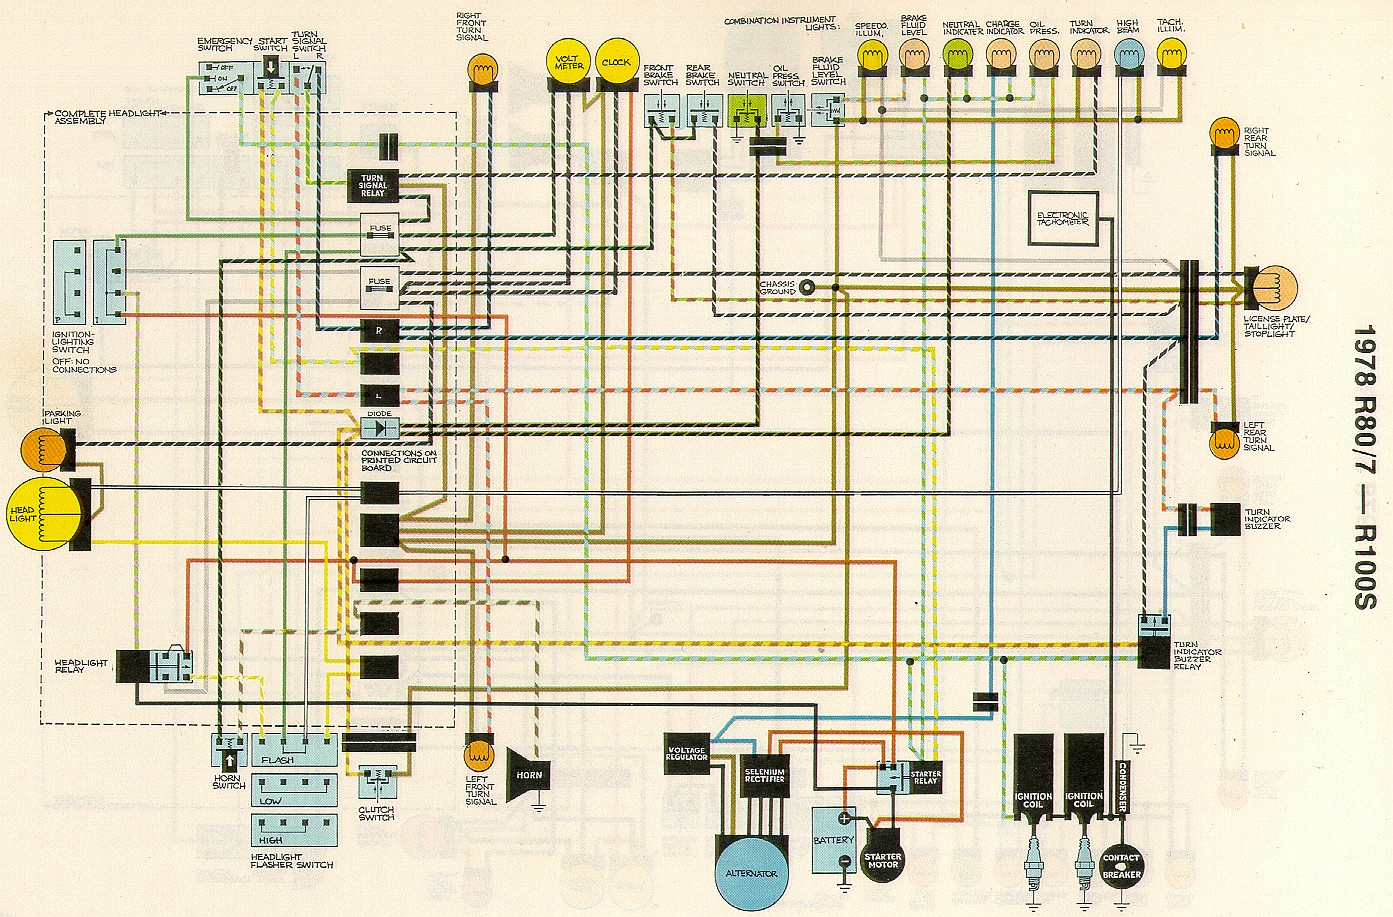 78 5 united articles wiring diagrams bmw r75/5 wiring diagram at gsmx.co